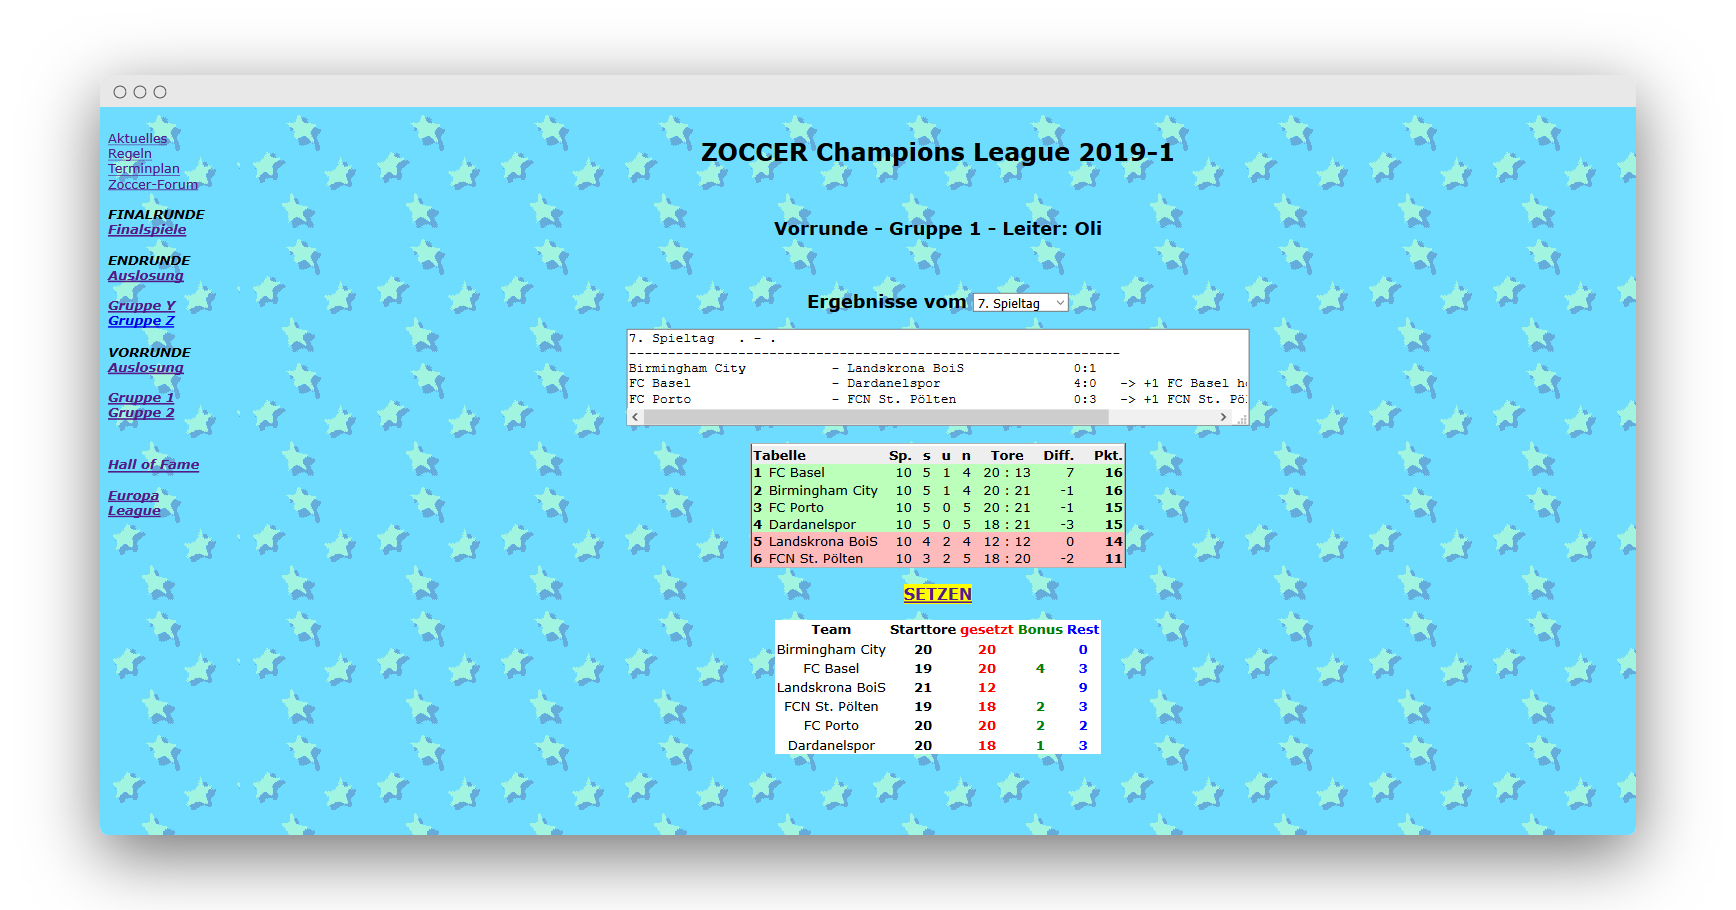 ZOCCER Champions League